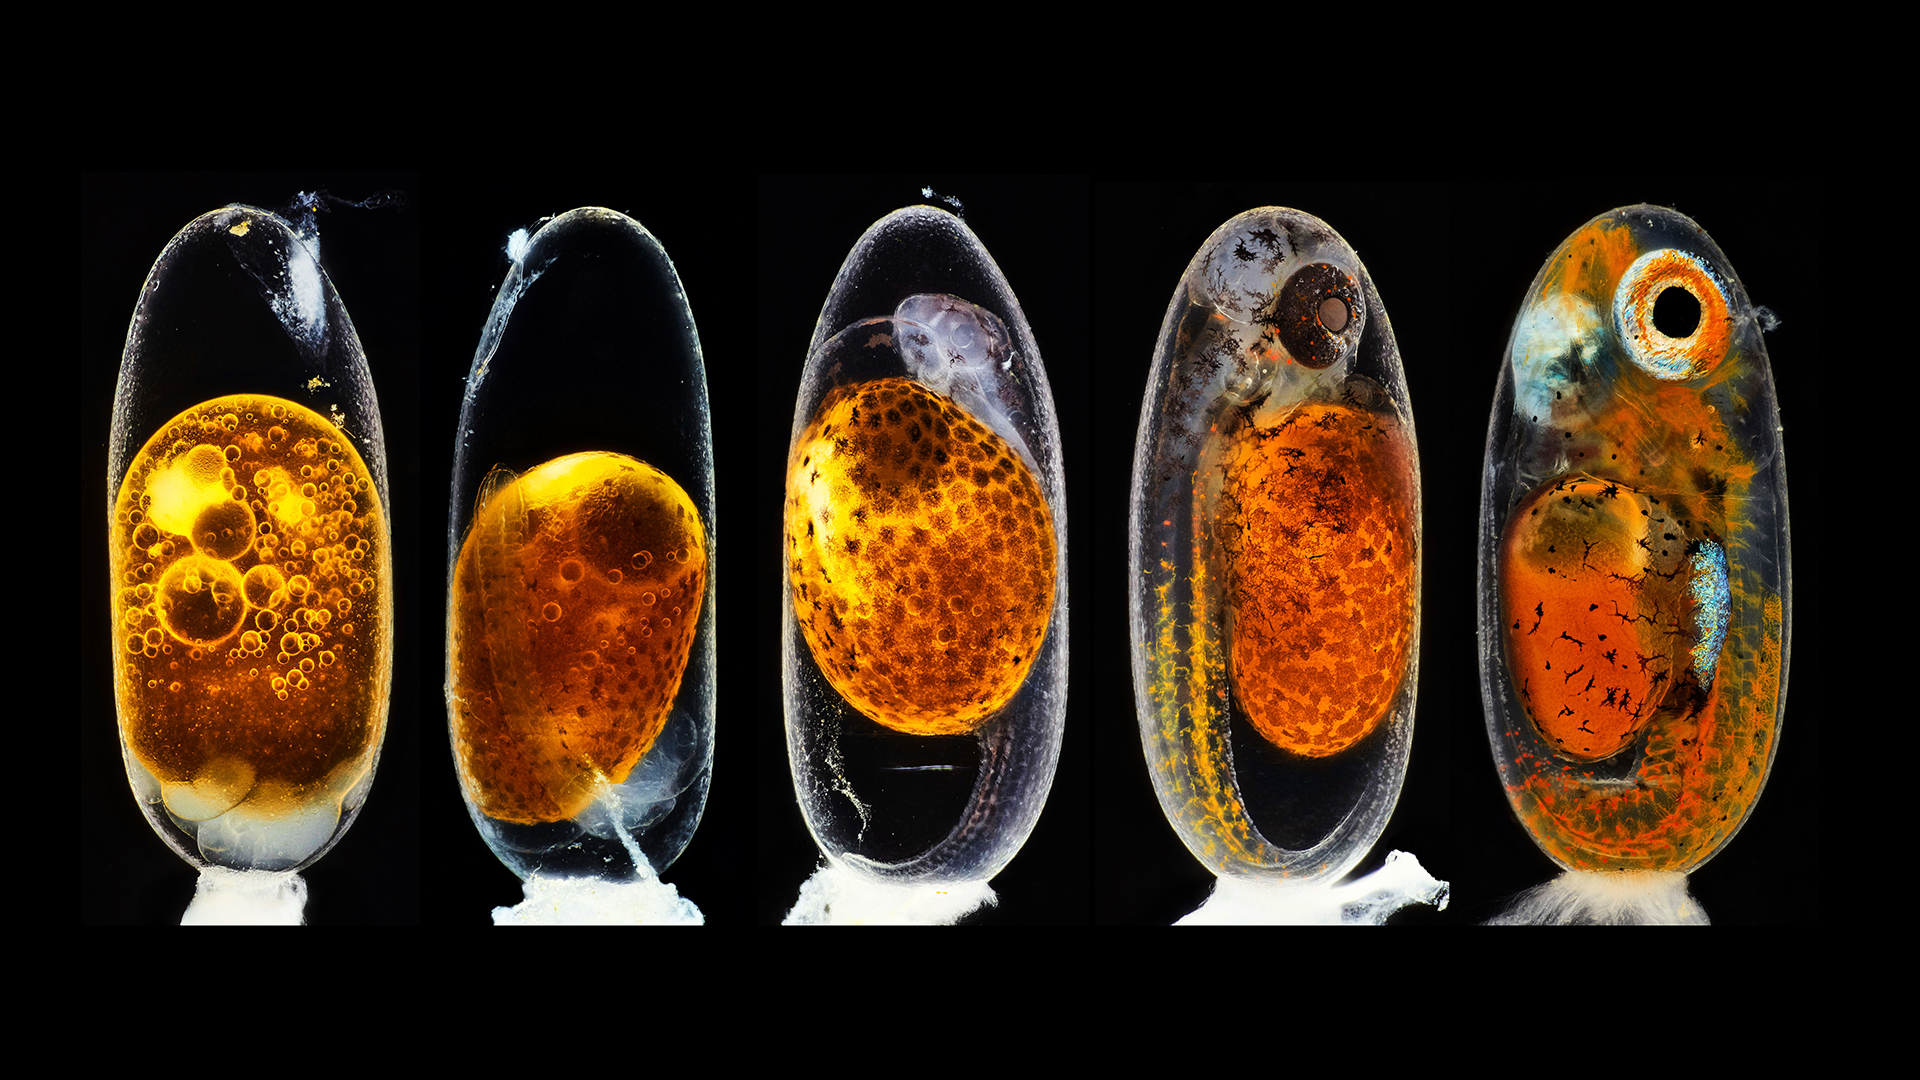 Second prize was awarded to the photographer who captured this image revealing the embryonic development of a clownfish (Amphiprion percula) on days one, three (morning and evening), five, and nine.